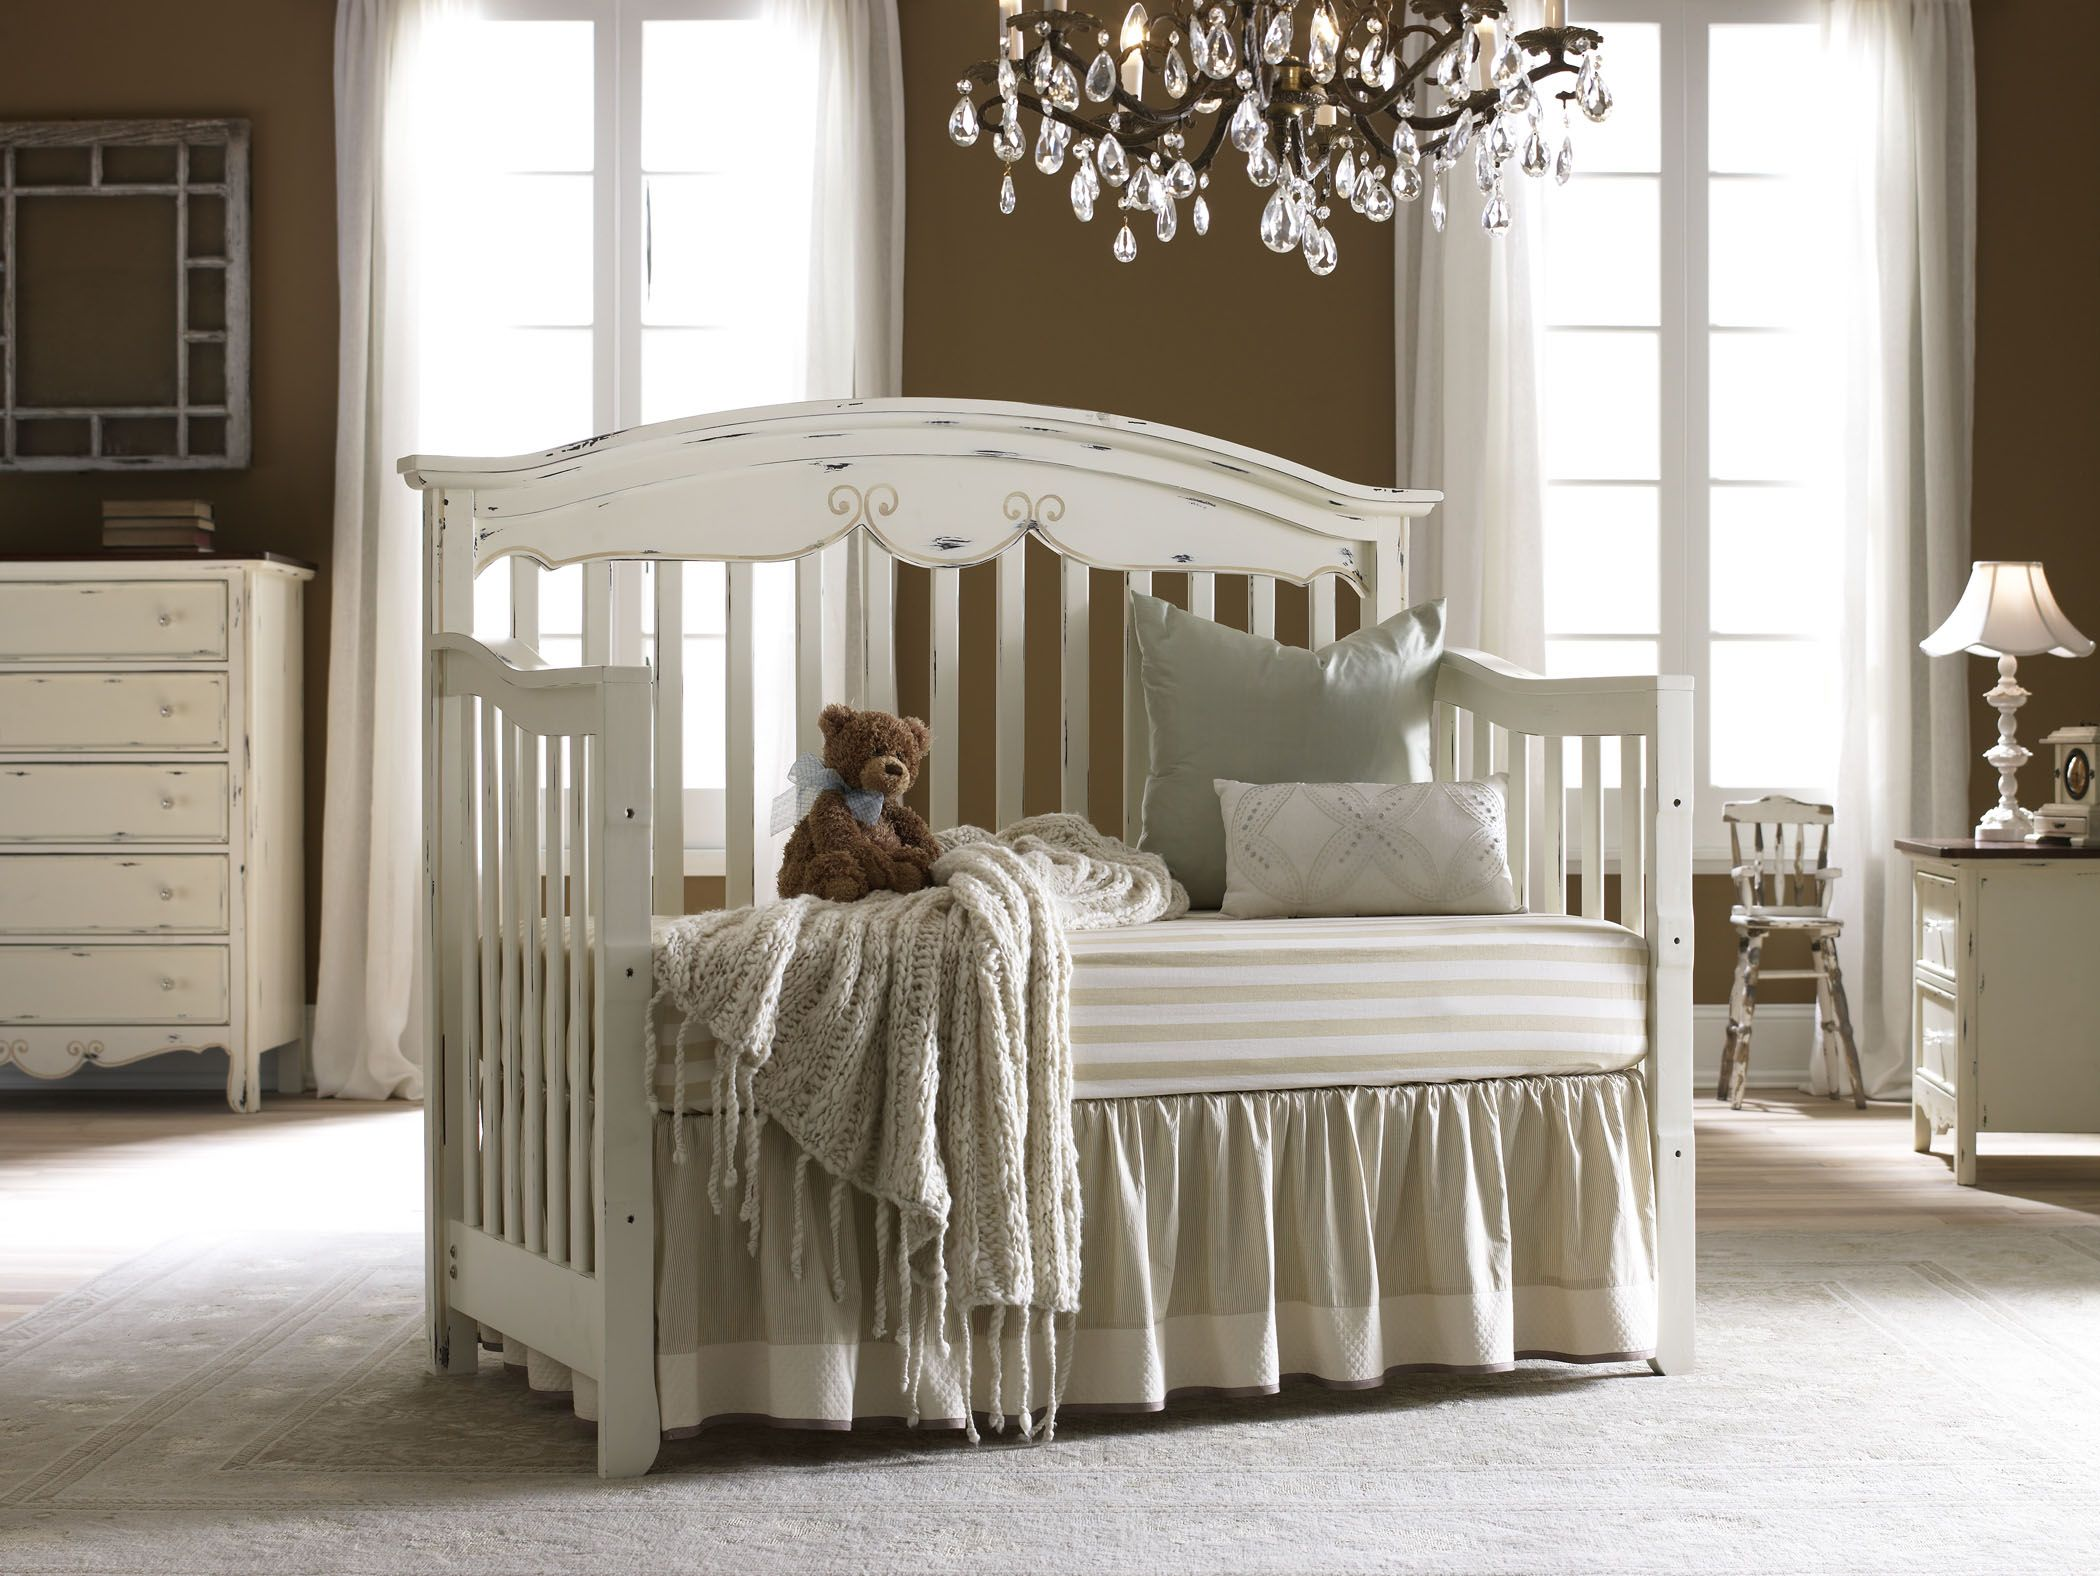 Bonavita crib for sale used - Bonavita Francais Collection Lifestyle Crib 699 99 Reminiscent Of Treasures Found In The French Countryside